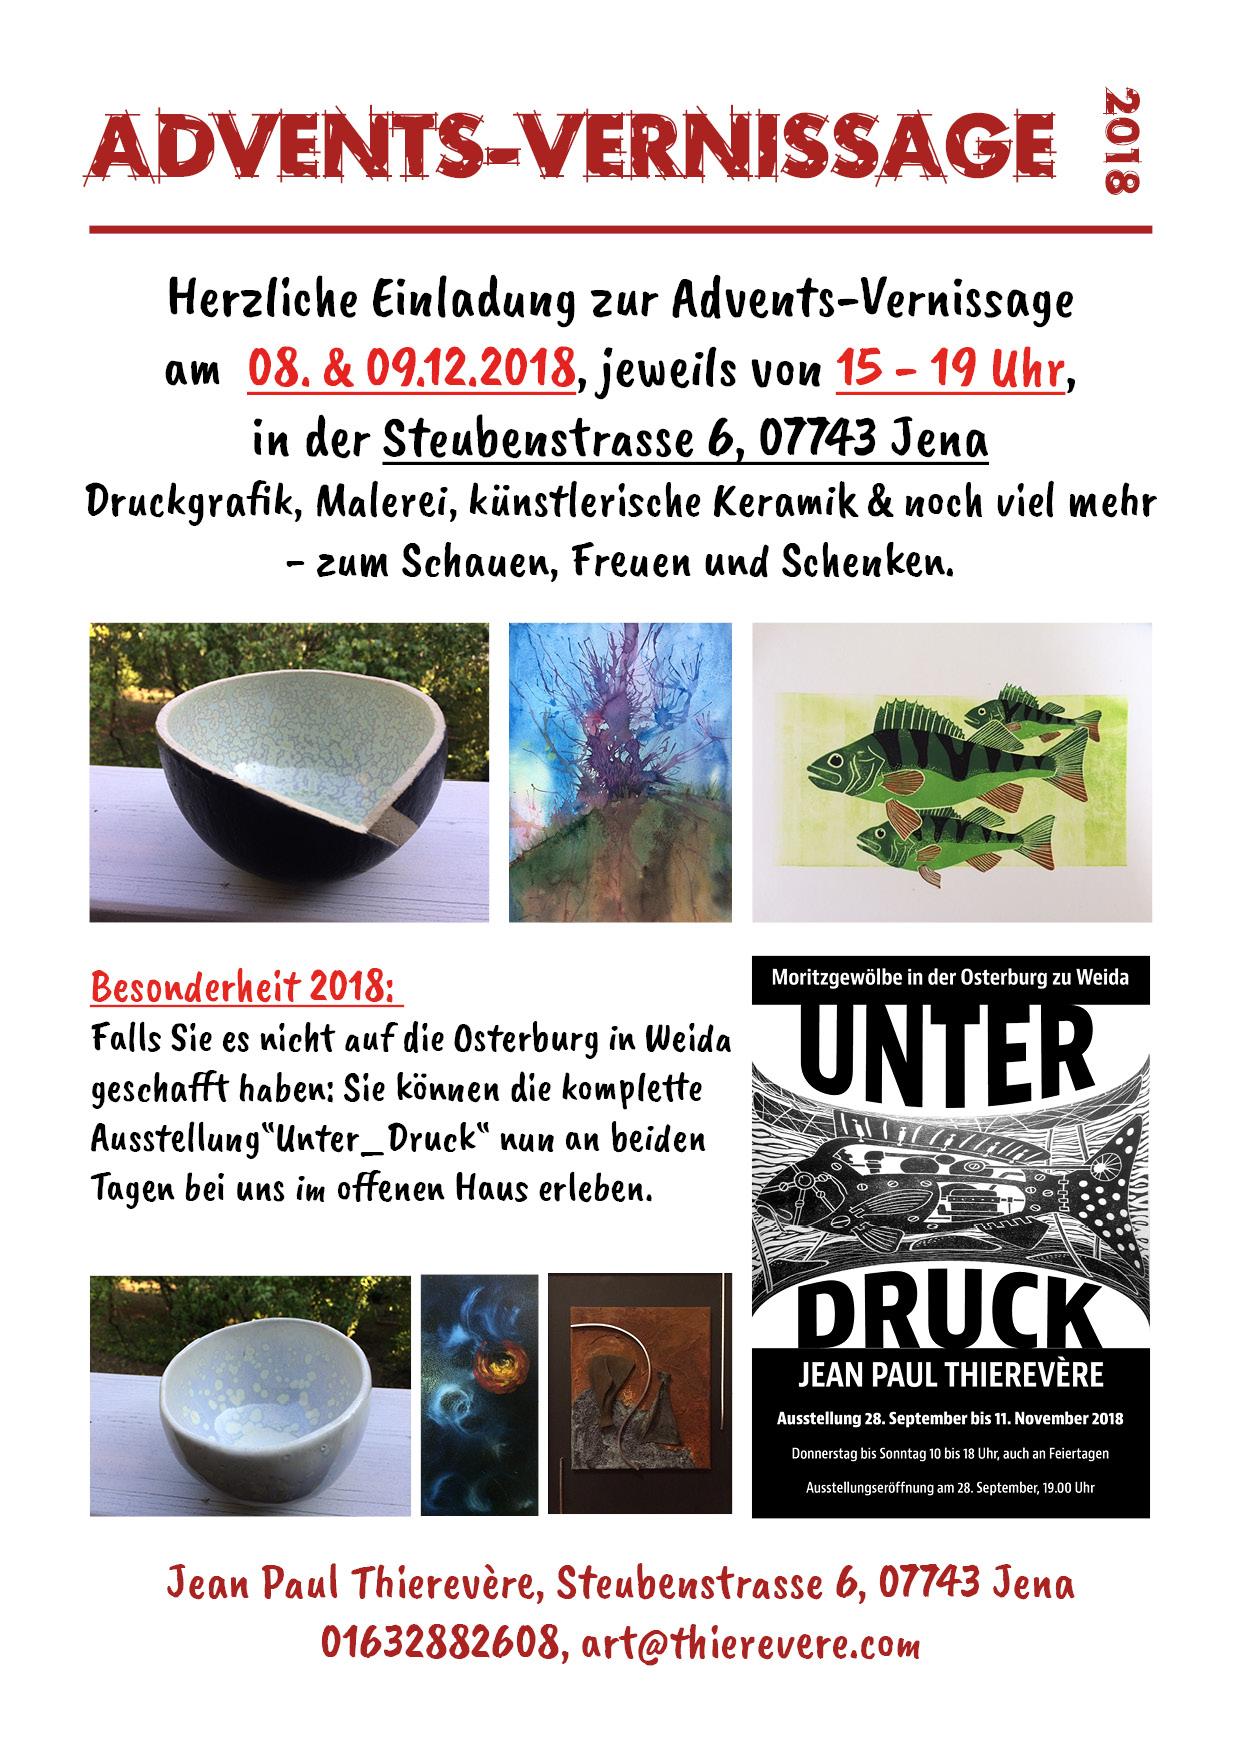 Advents-Vernissage